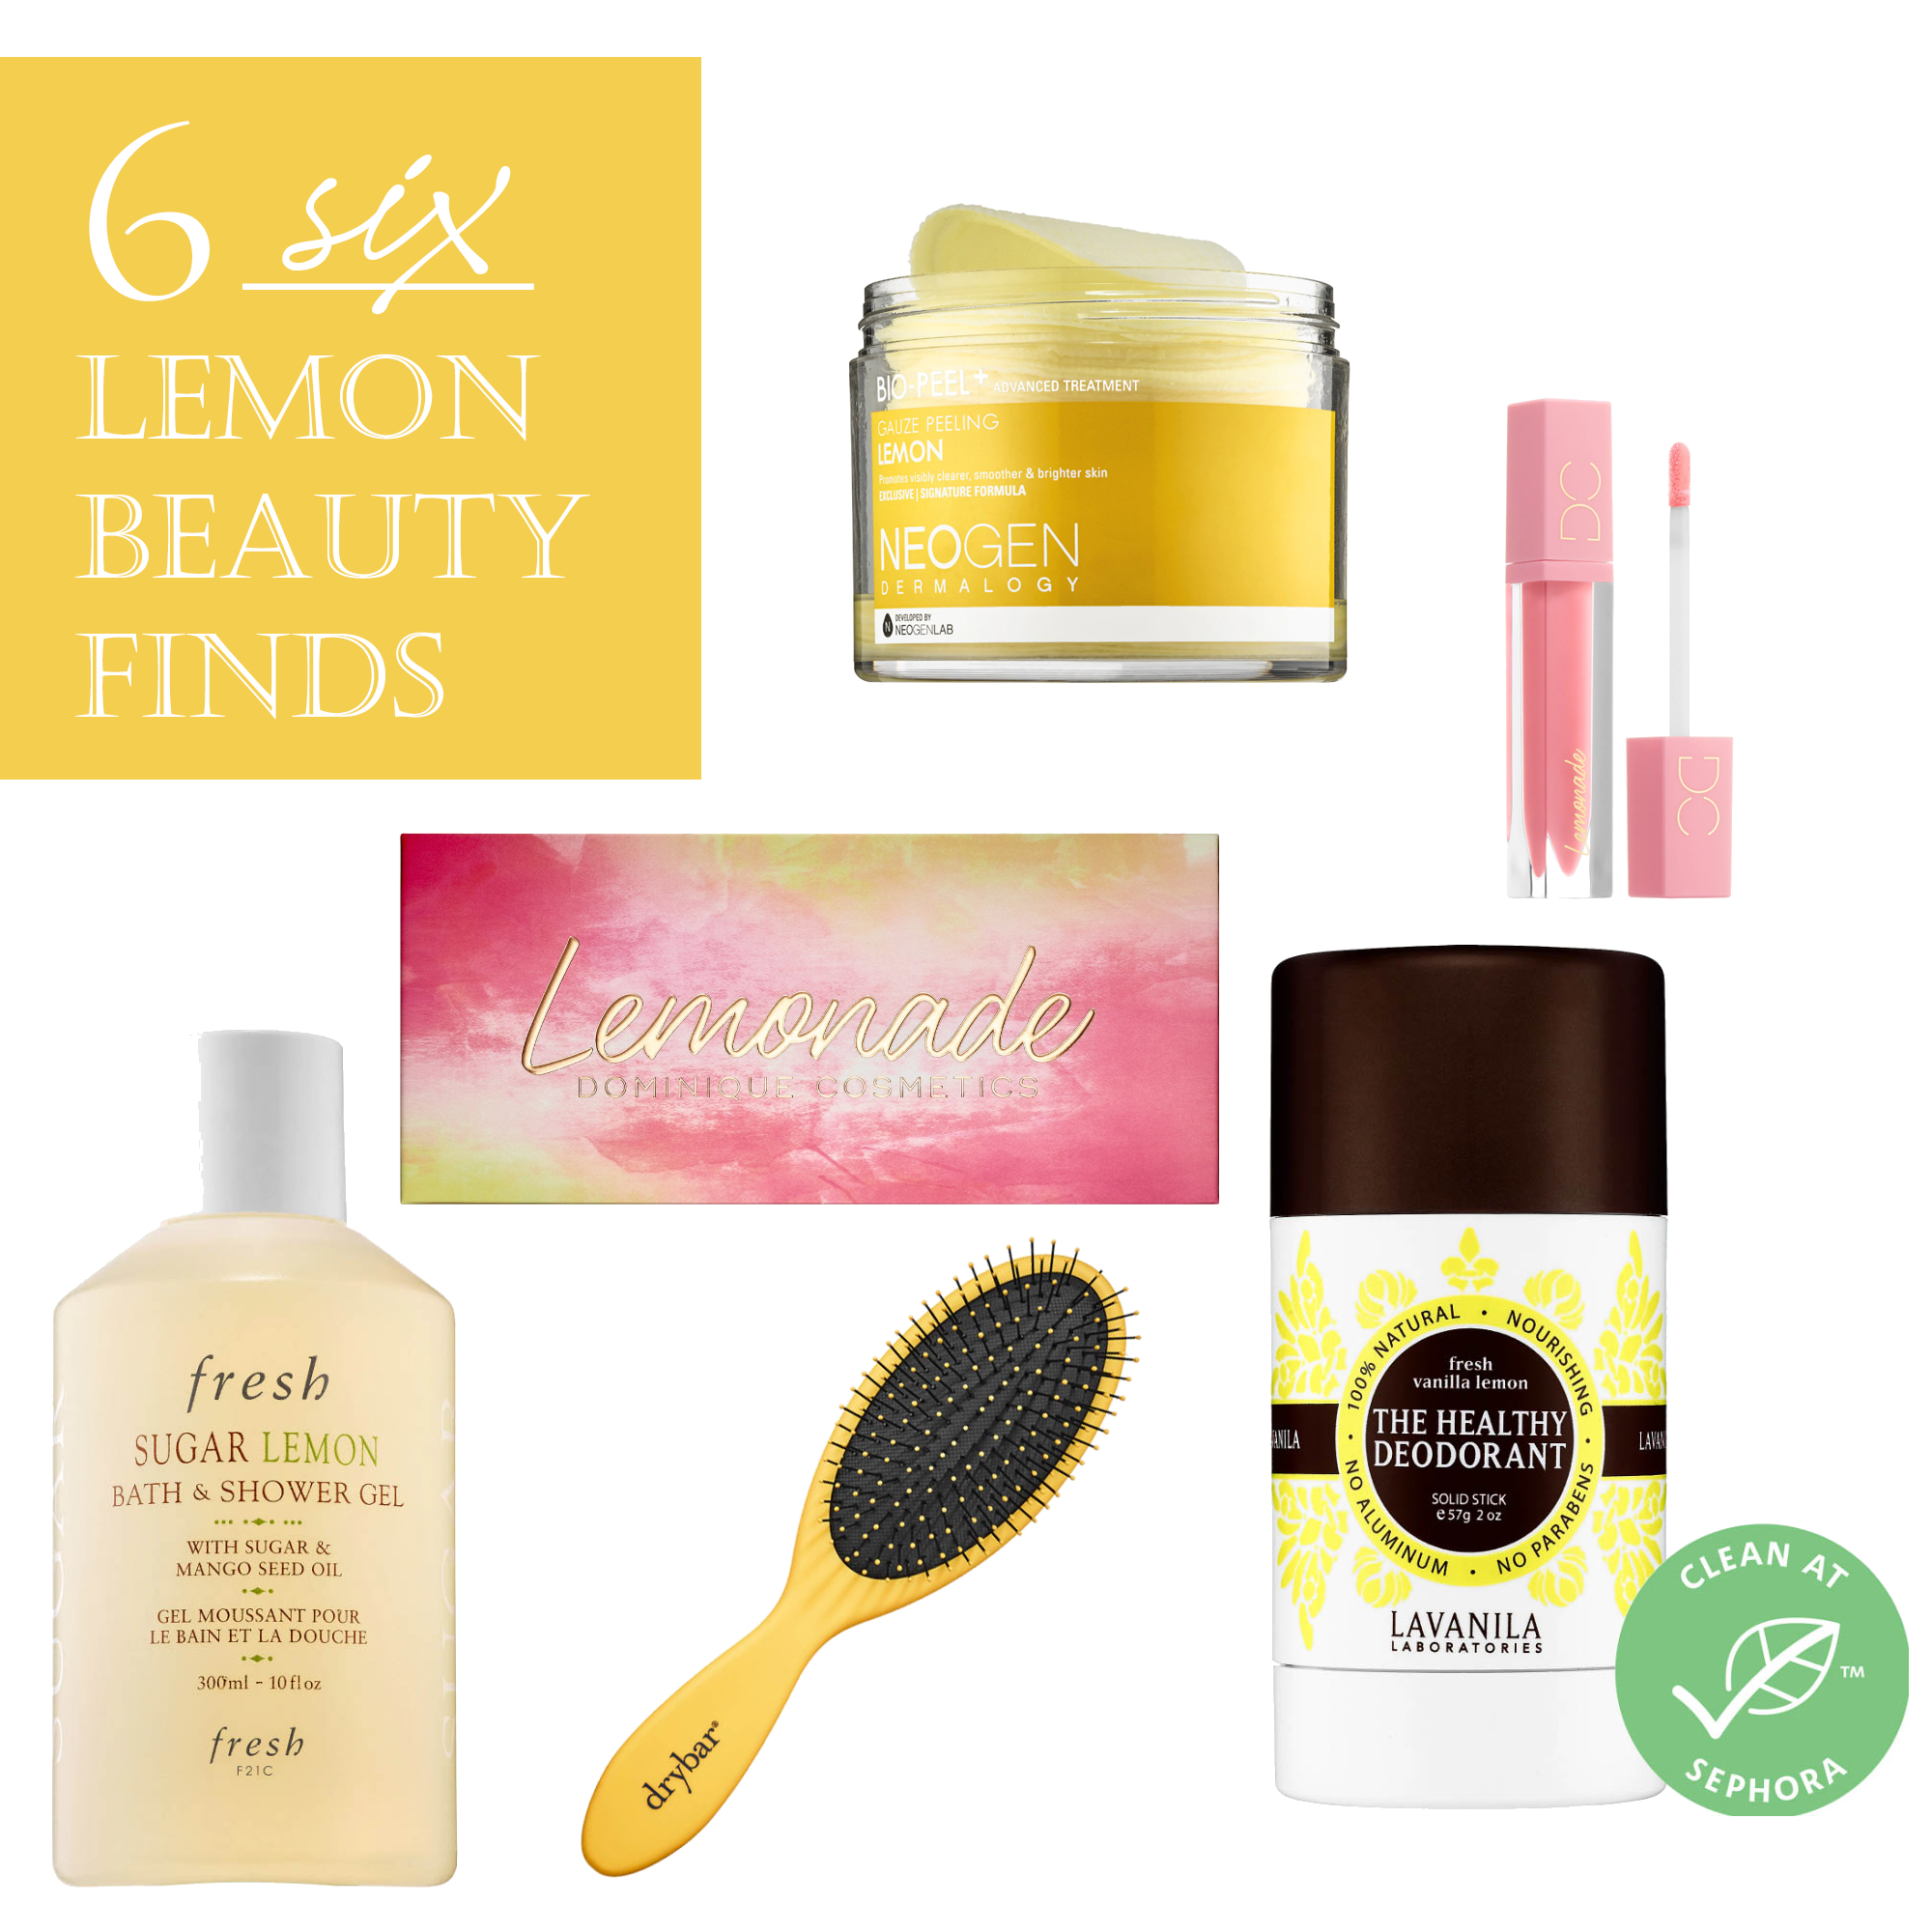 6- lemon -beauty-finds-sephora.png